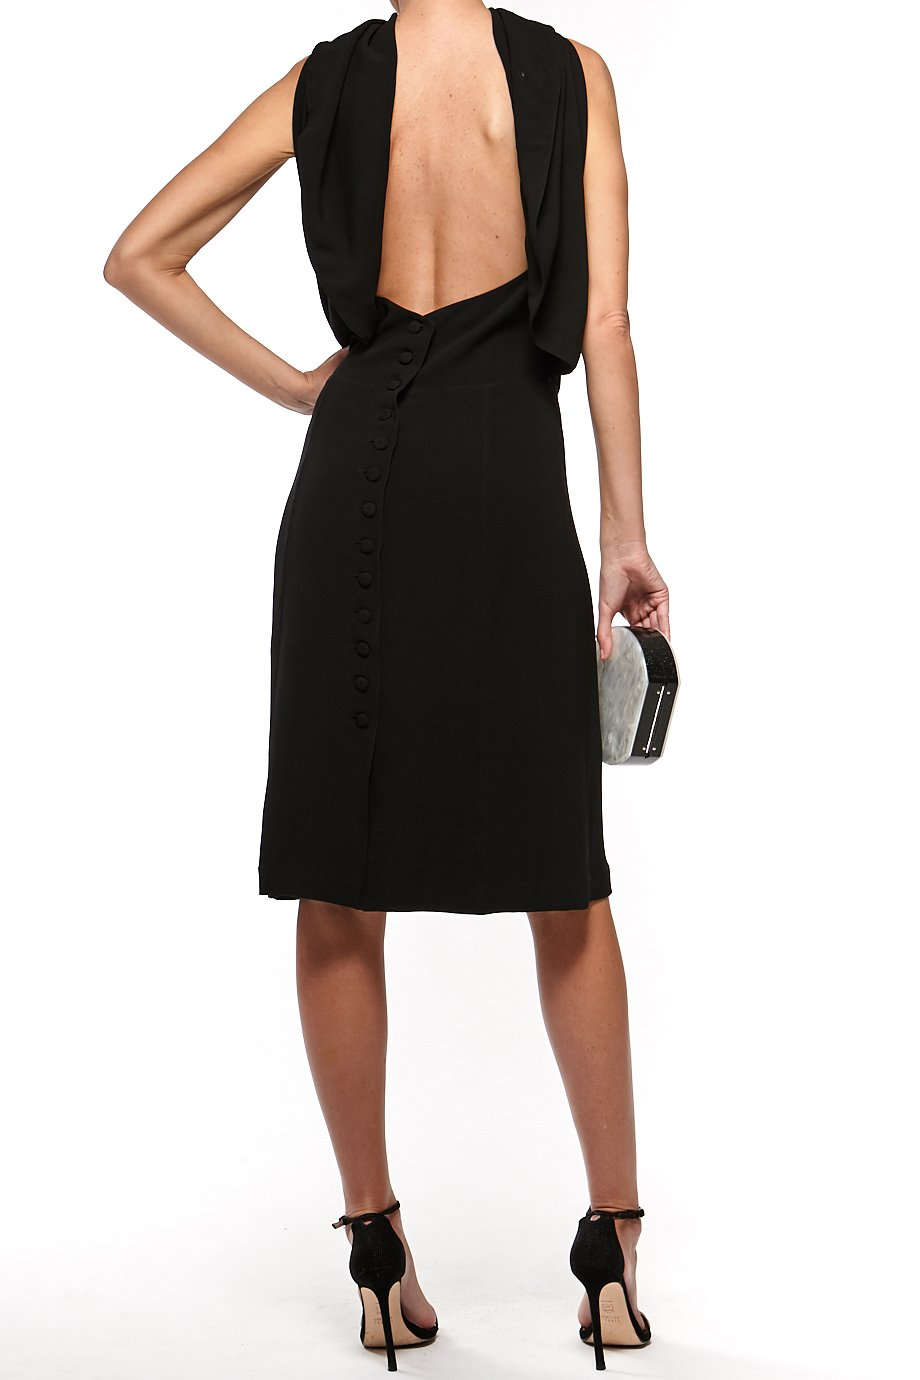 Fendi Black Lace Low Open Back Midi Cape dress